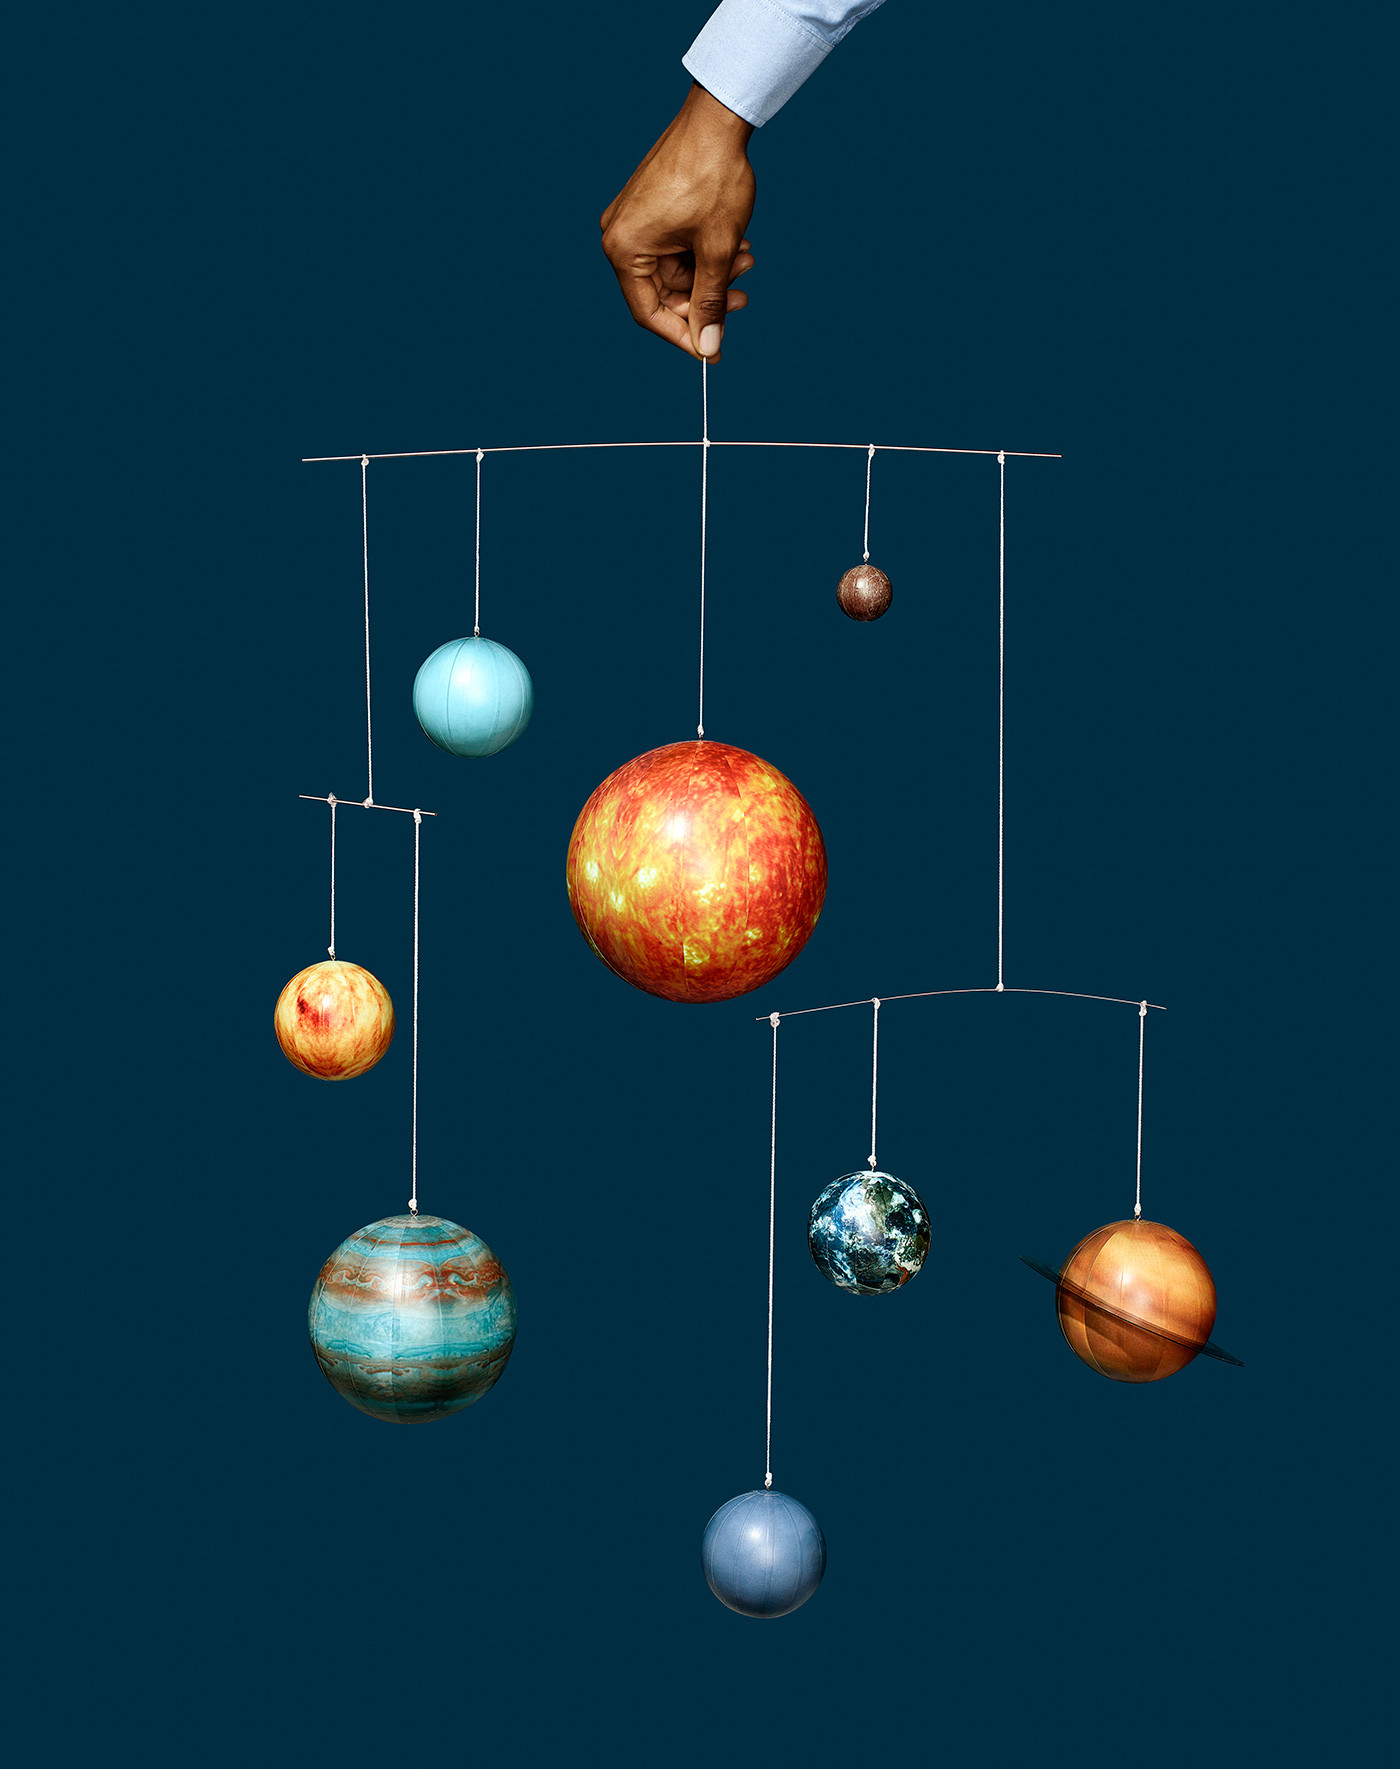 https://tickertapecdn.tdameritrade.com/assets/images/pages/md/Solar system mobile held by a hand